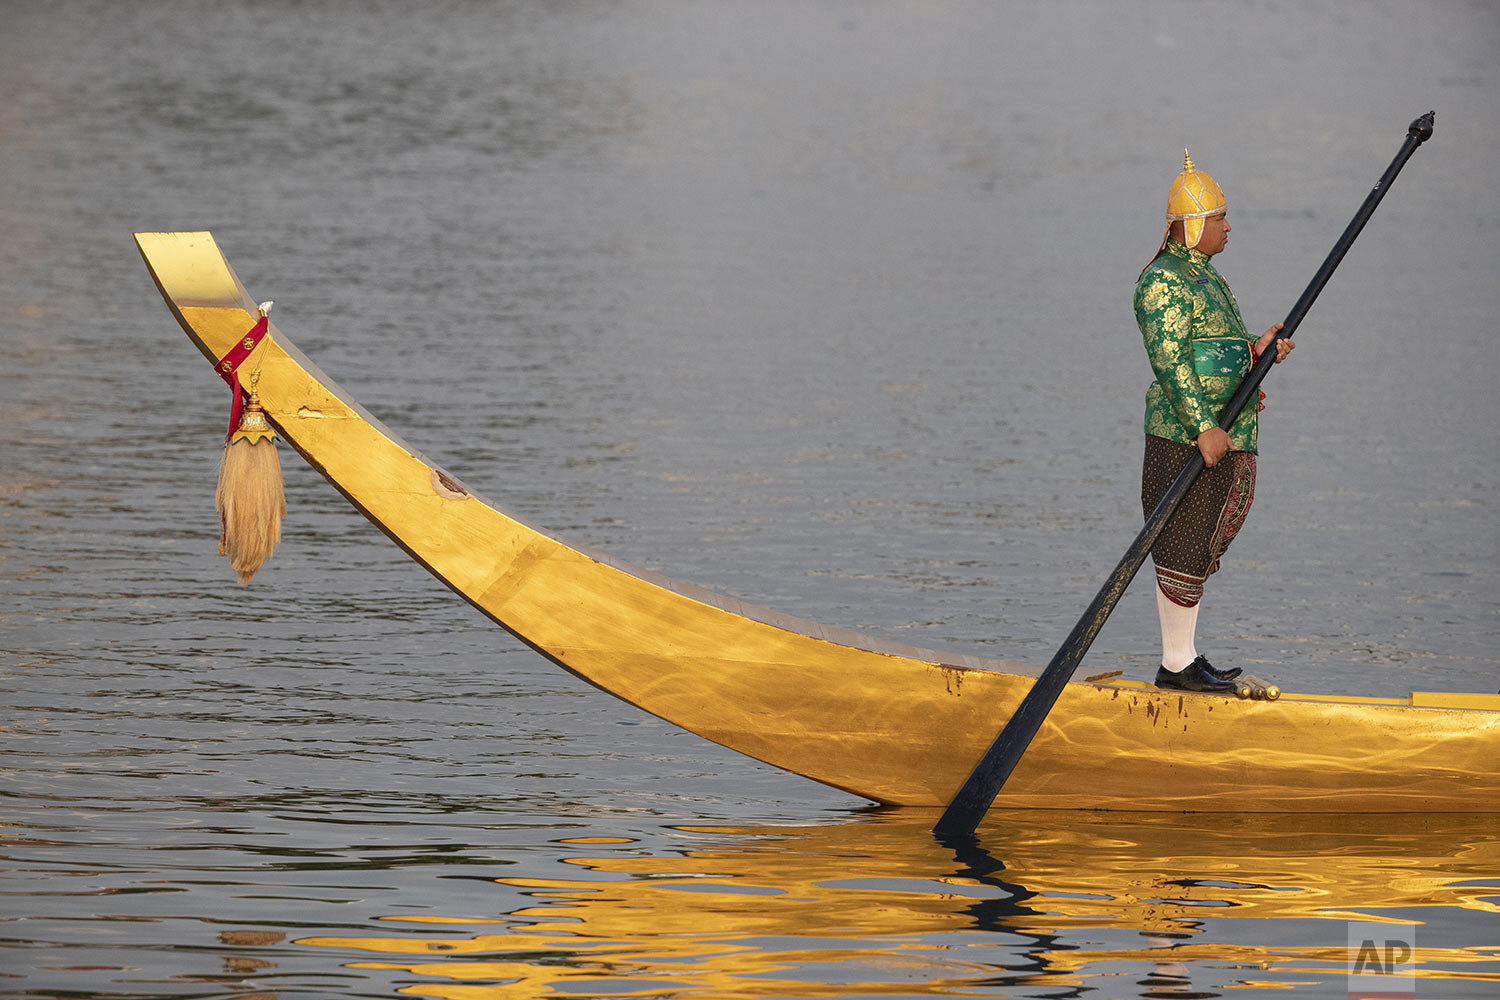 A lone oarsman stands on his boat during the dress rehearsal for the Royal barge ceremony on the Chao Phraya river Bangkok, Thailand, Monday, Oct. 21, 2019. (AP Photo/Sakchai Lalit)